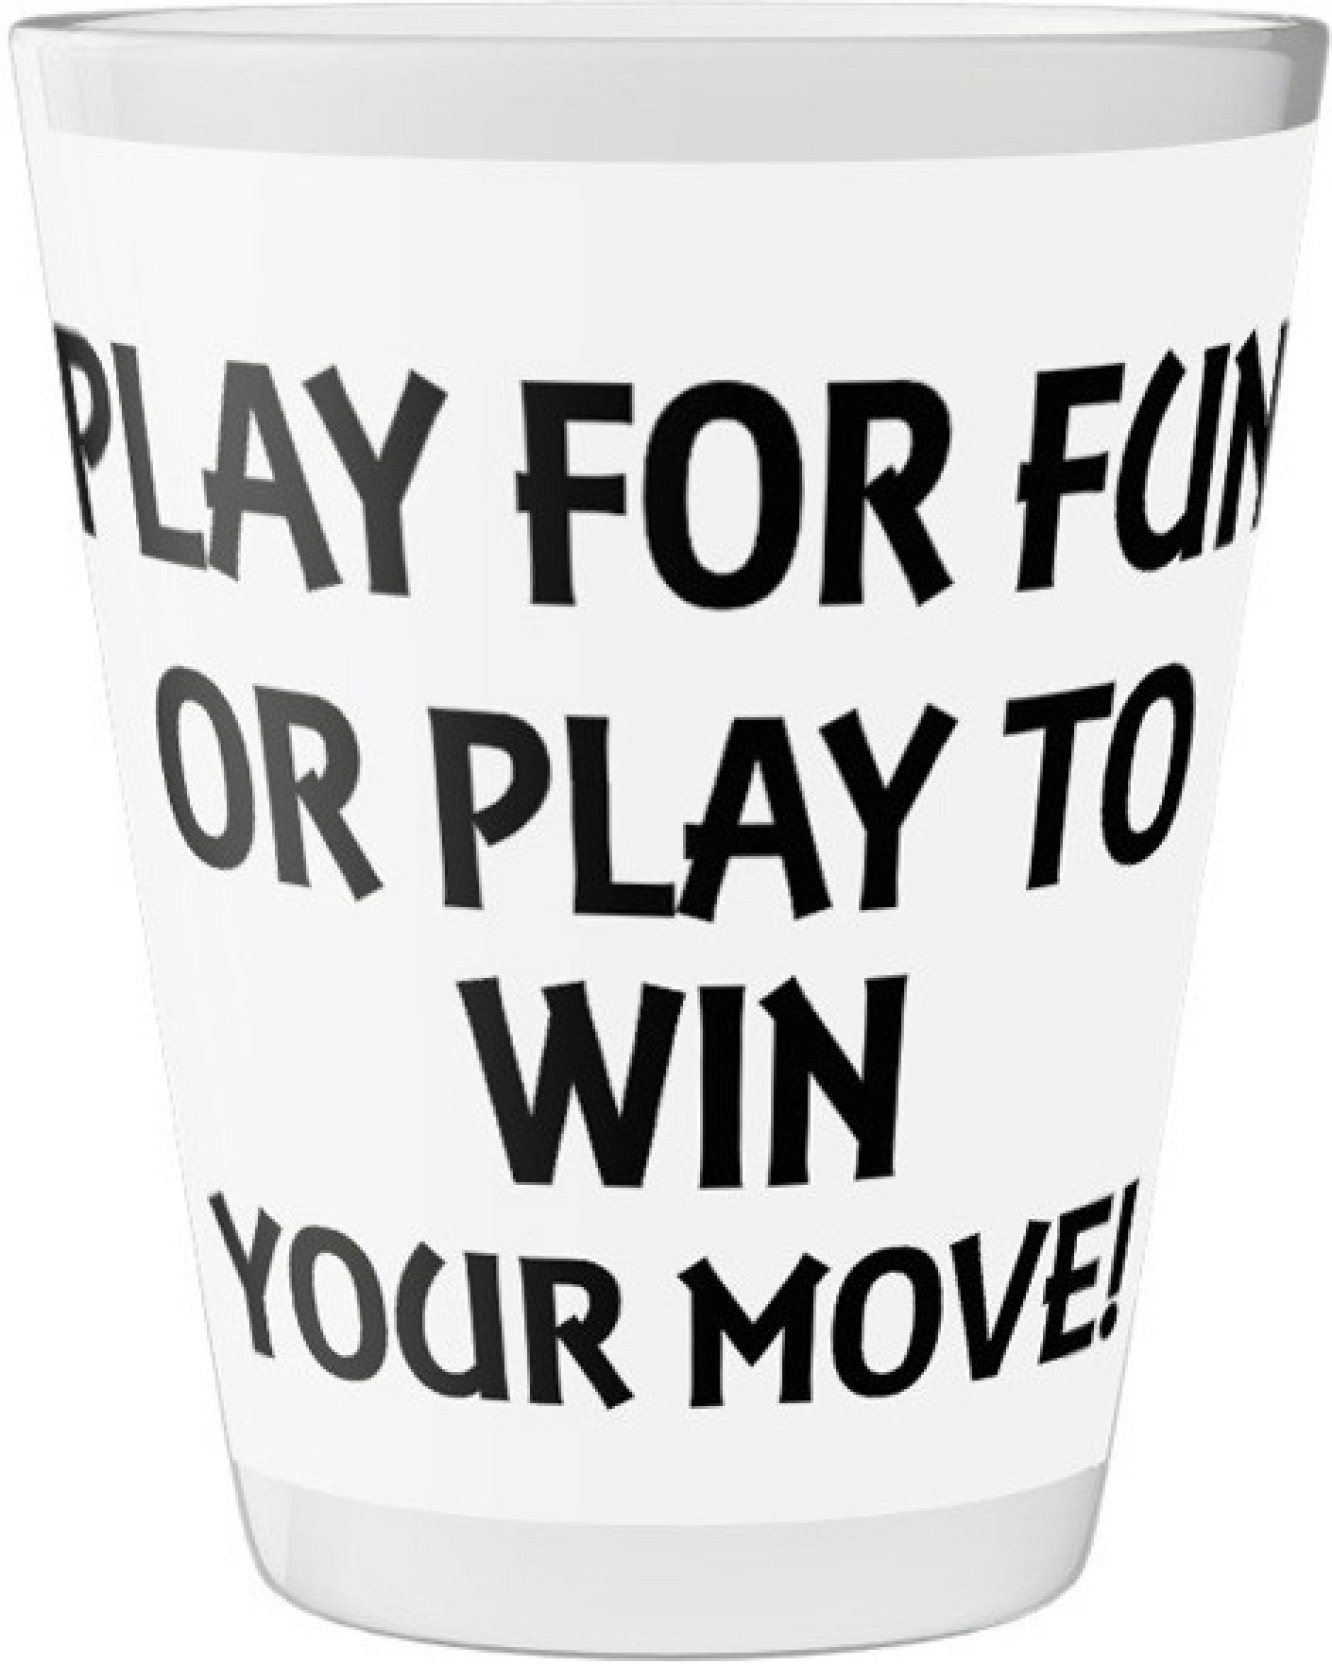 Pics And You Quotes Themed 131 Your Move Shot Glass Printed Glass